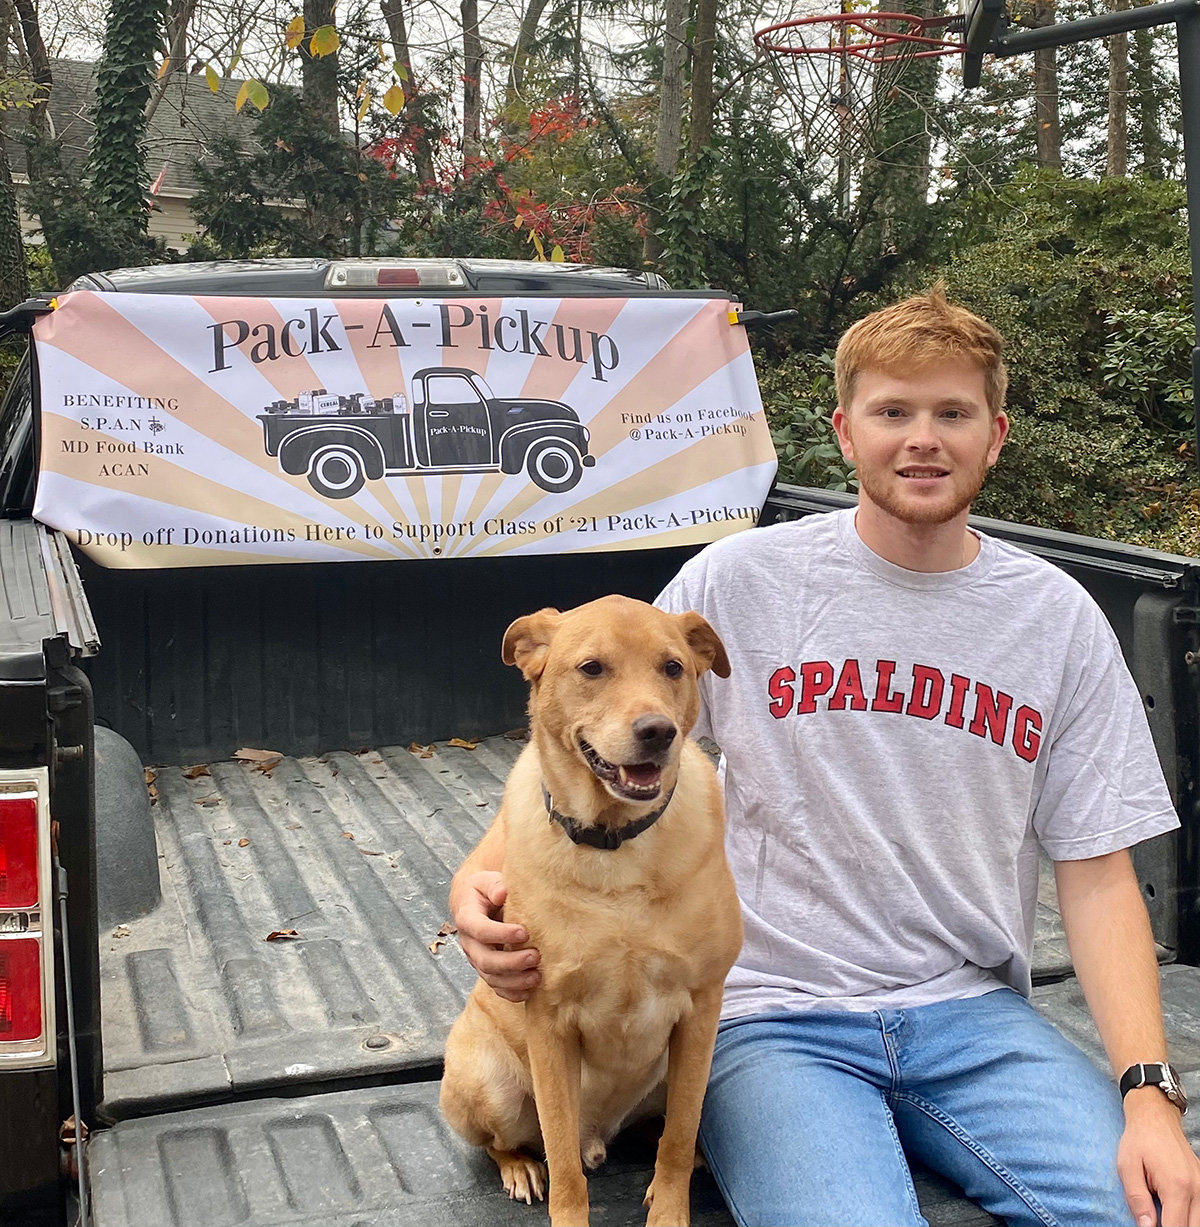 High school senior Brice Persico was named the December Margueritte Mills Volunteer of the Month for his Pack-A-Pickup food drive.